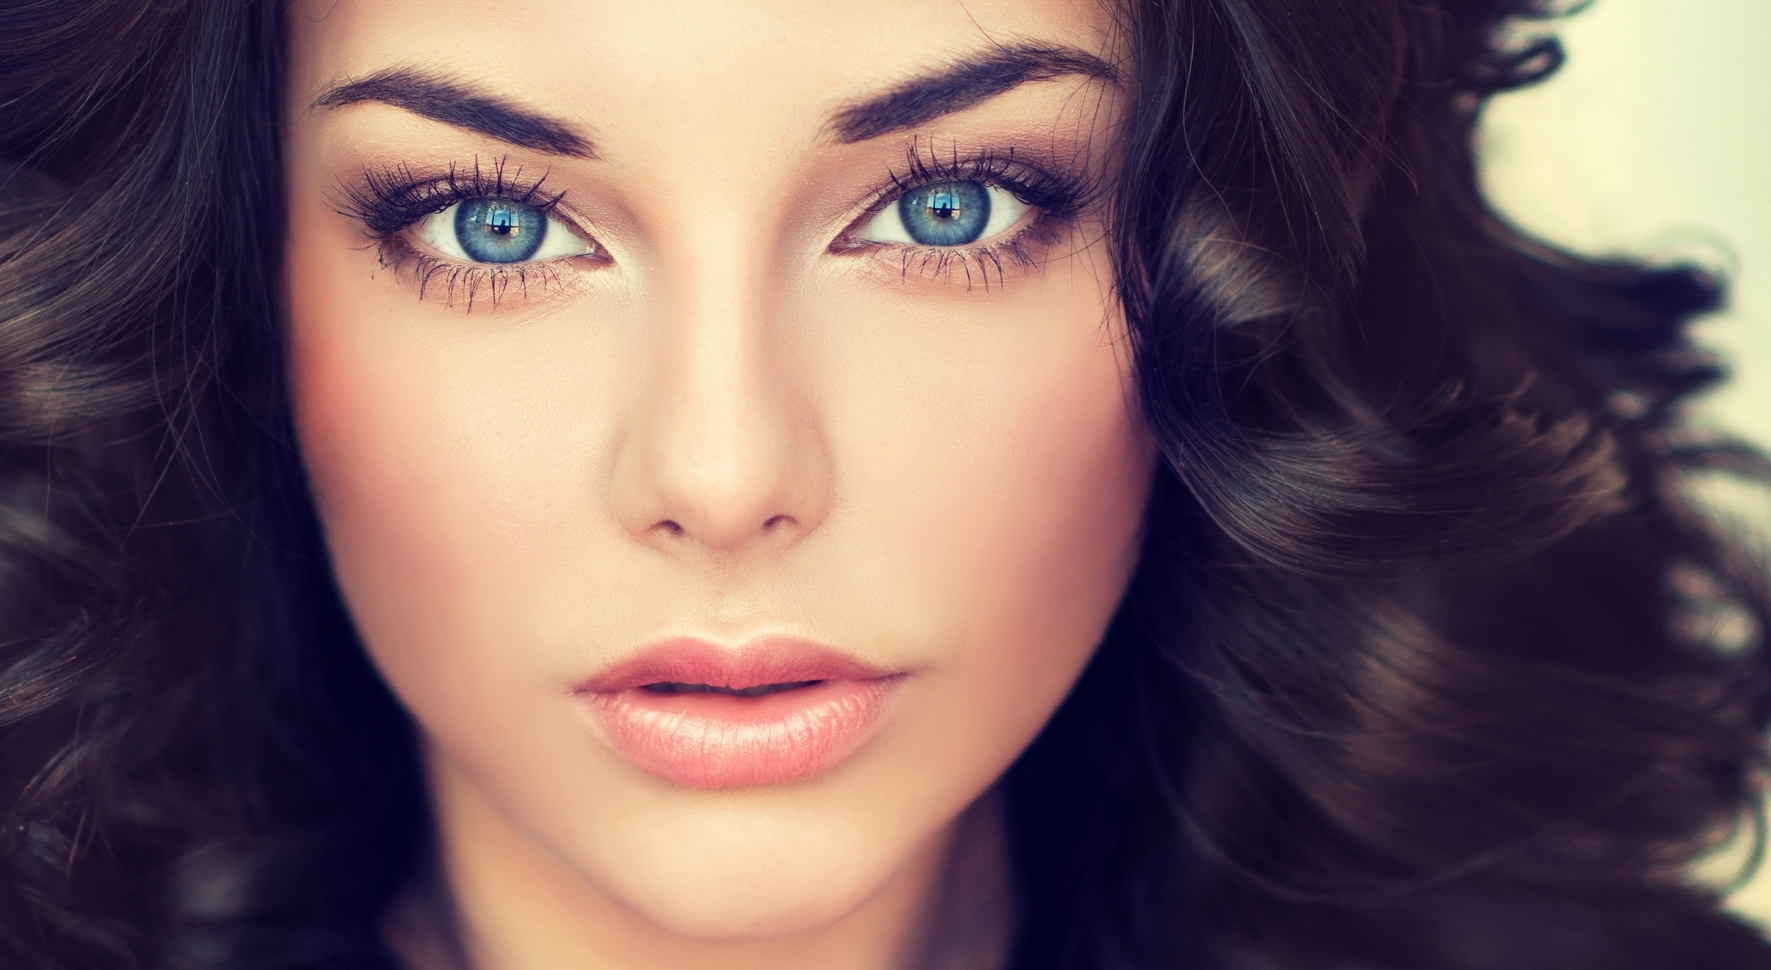 Best Eye Shadow Colors For Blue Eyes | Lovetoknow intended for Eyeshadow Colors For Blue Eyes And Brown Hair And Fair Skin